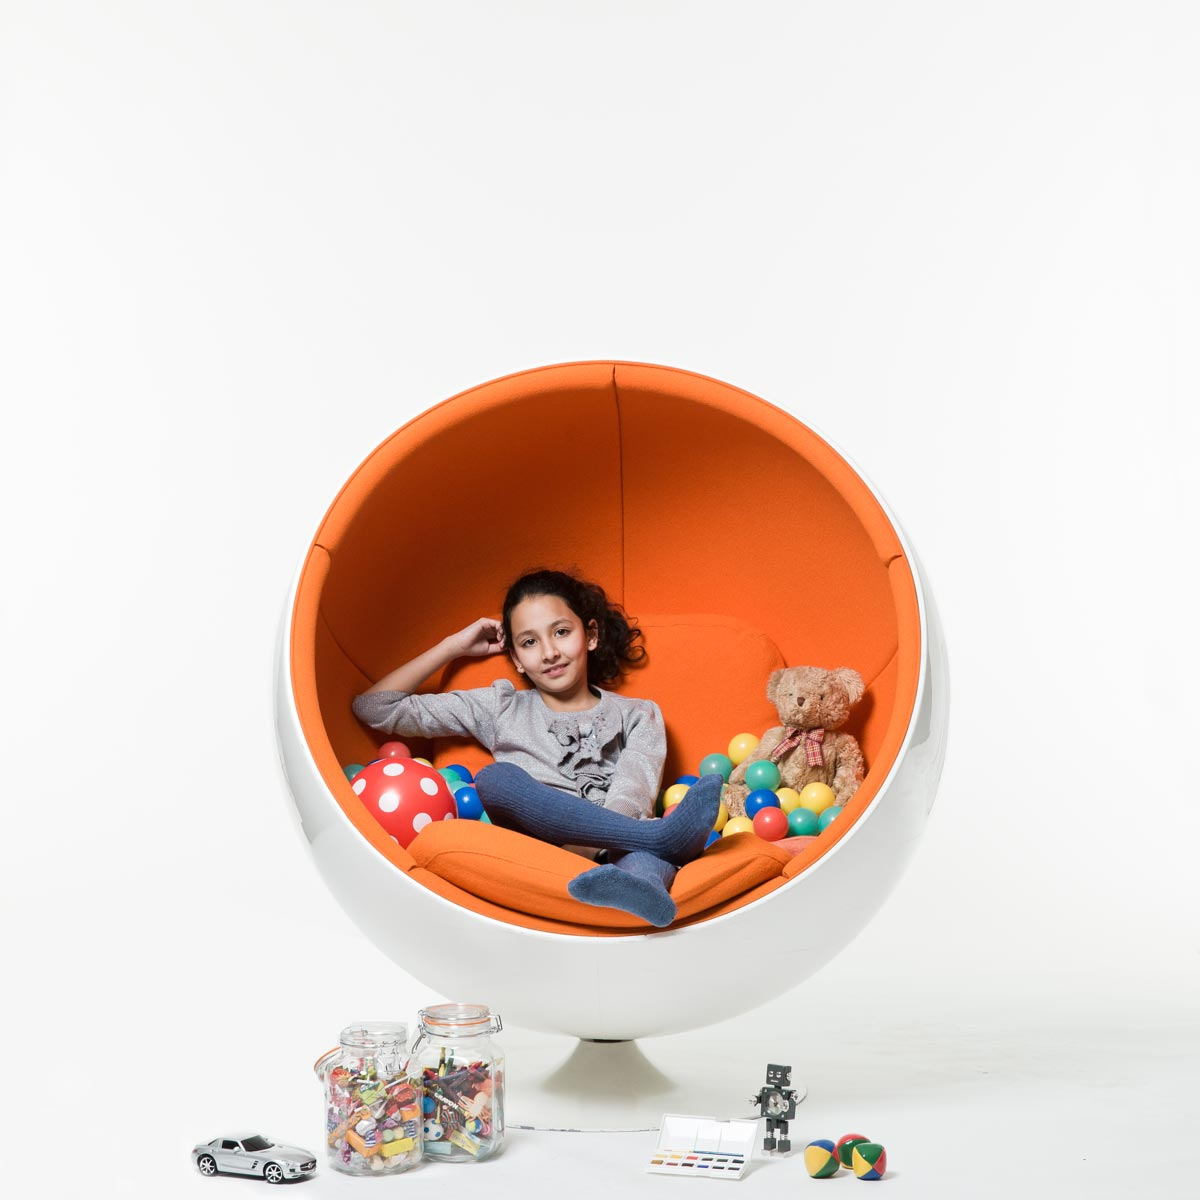 Young girl with toys sitting in orange chair